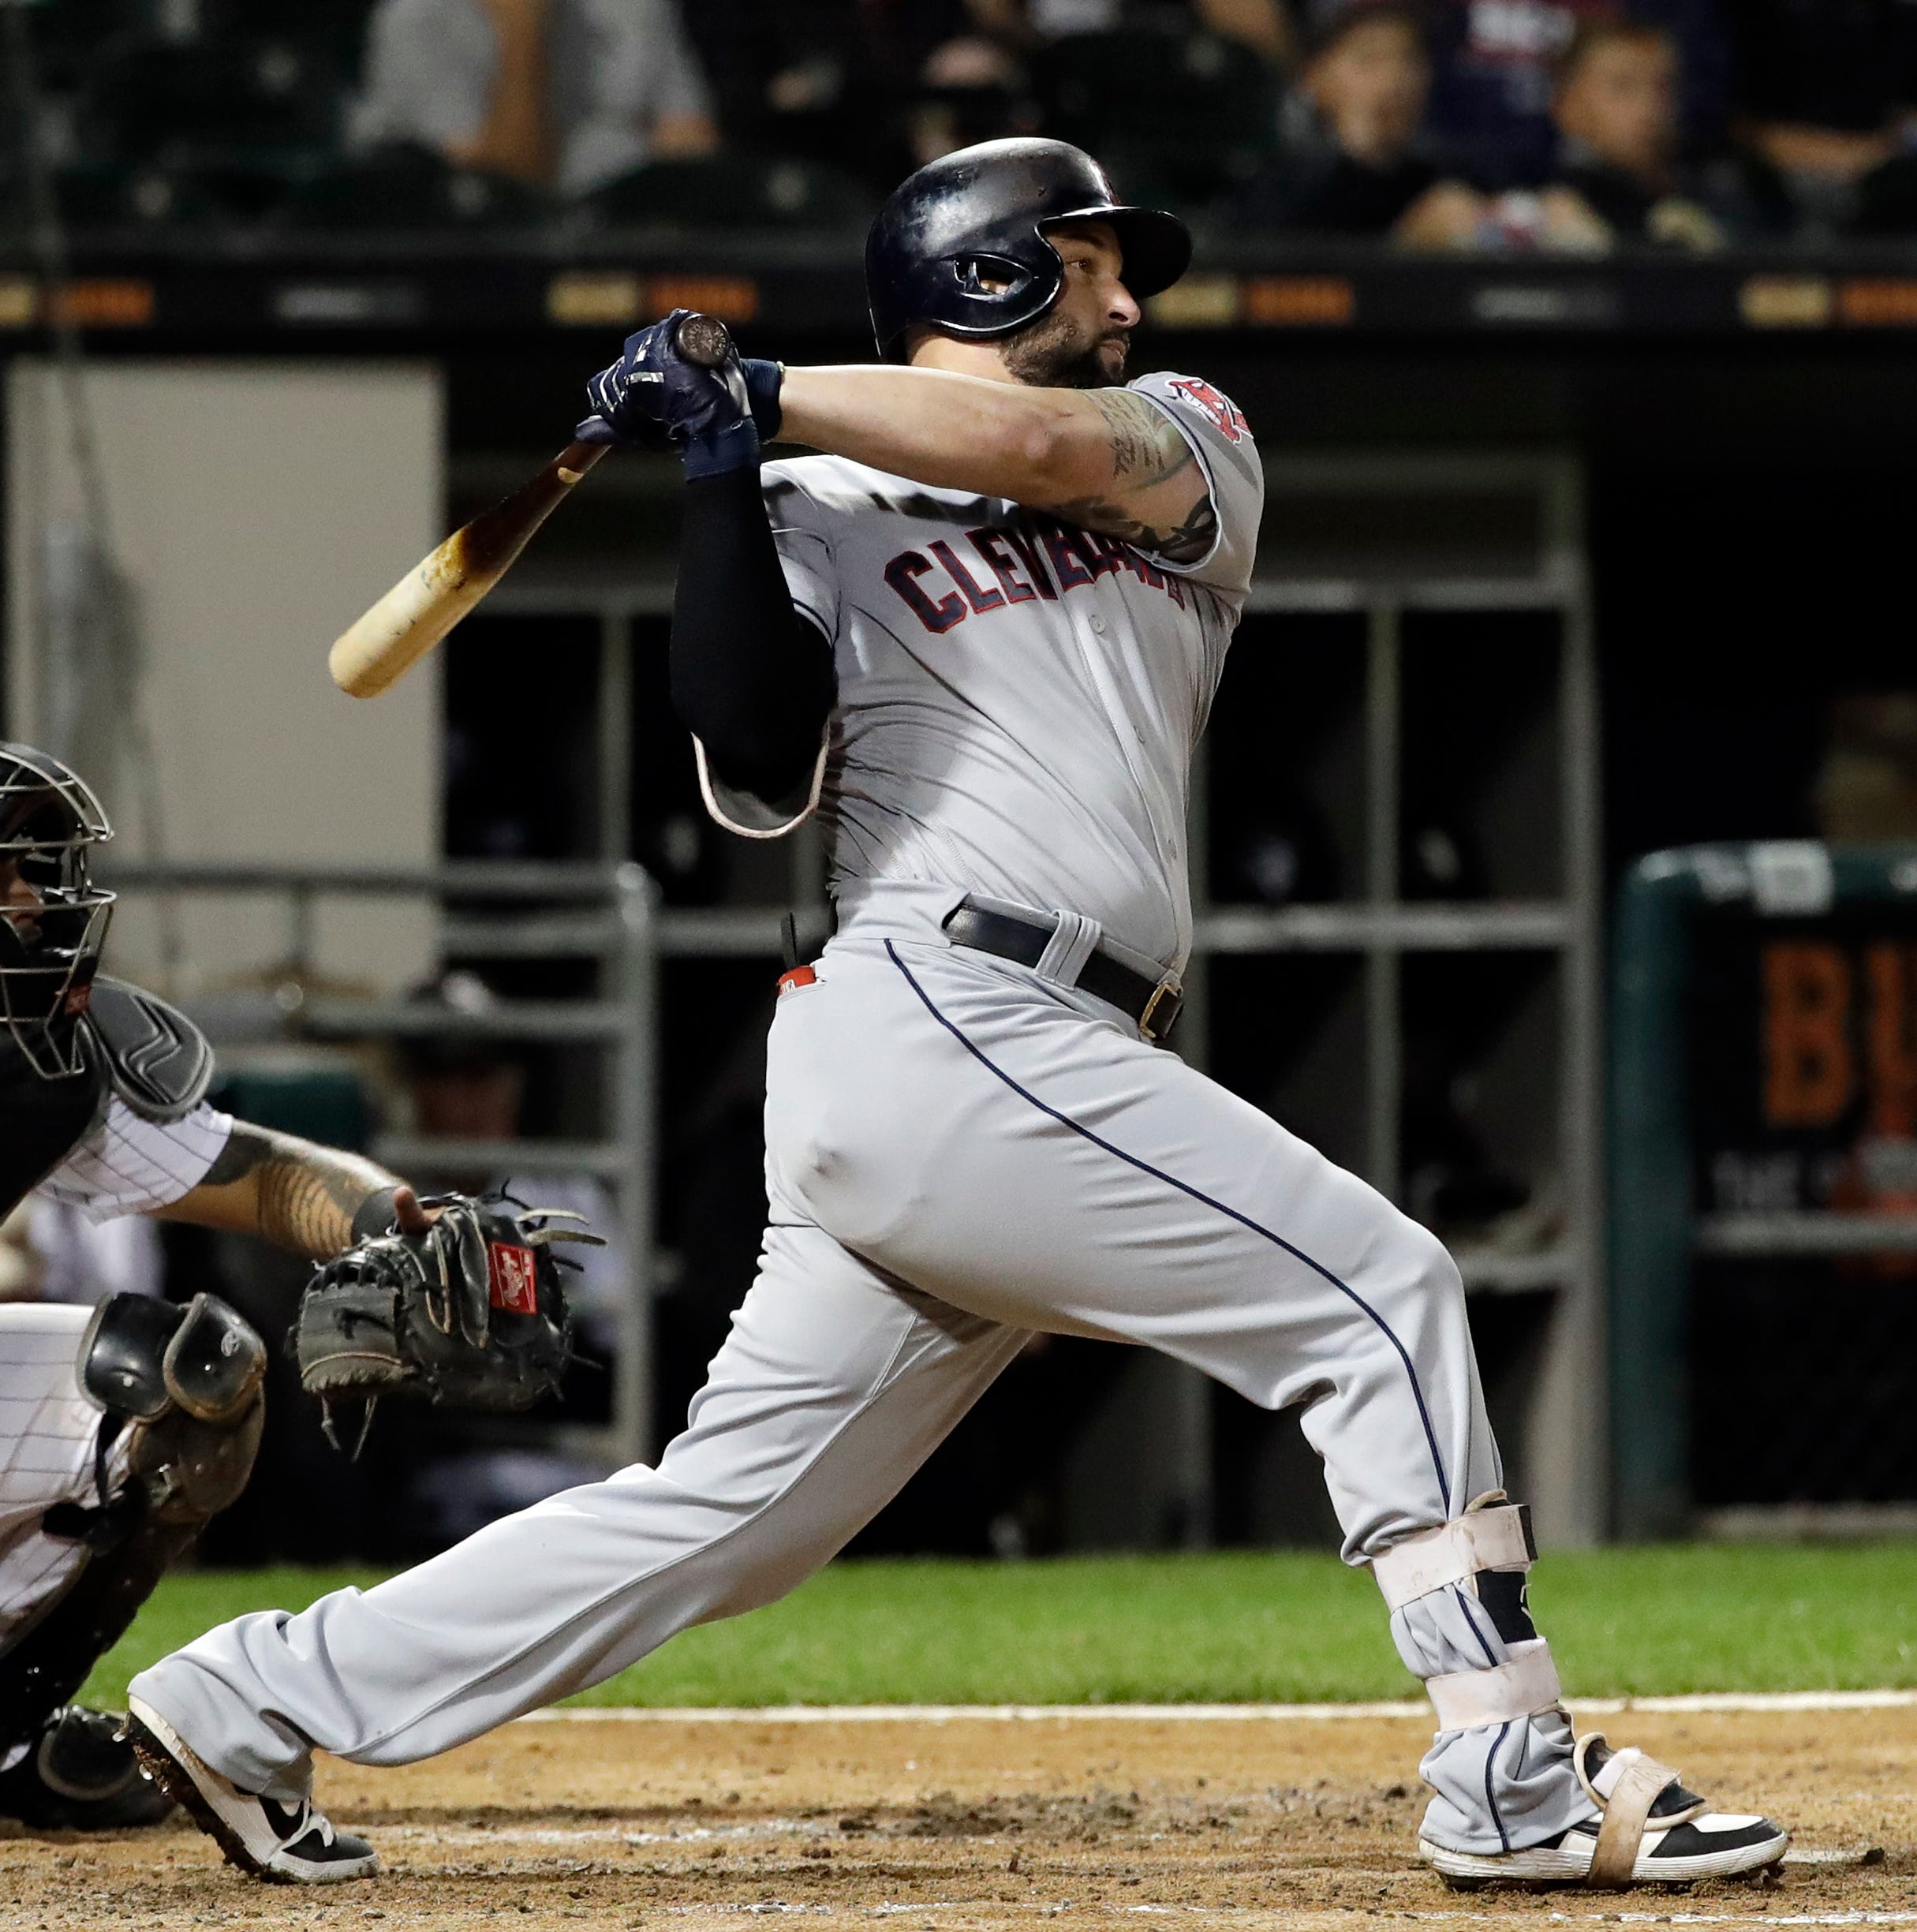 AP source: White Sox acquire 1B Alonso in trade with Indians